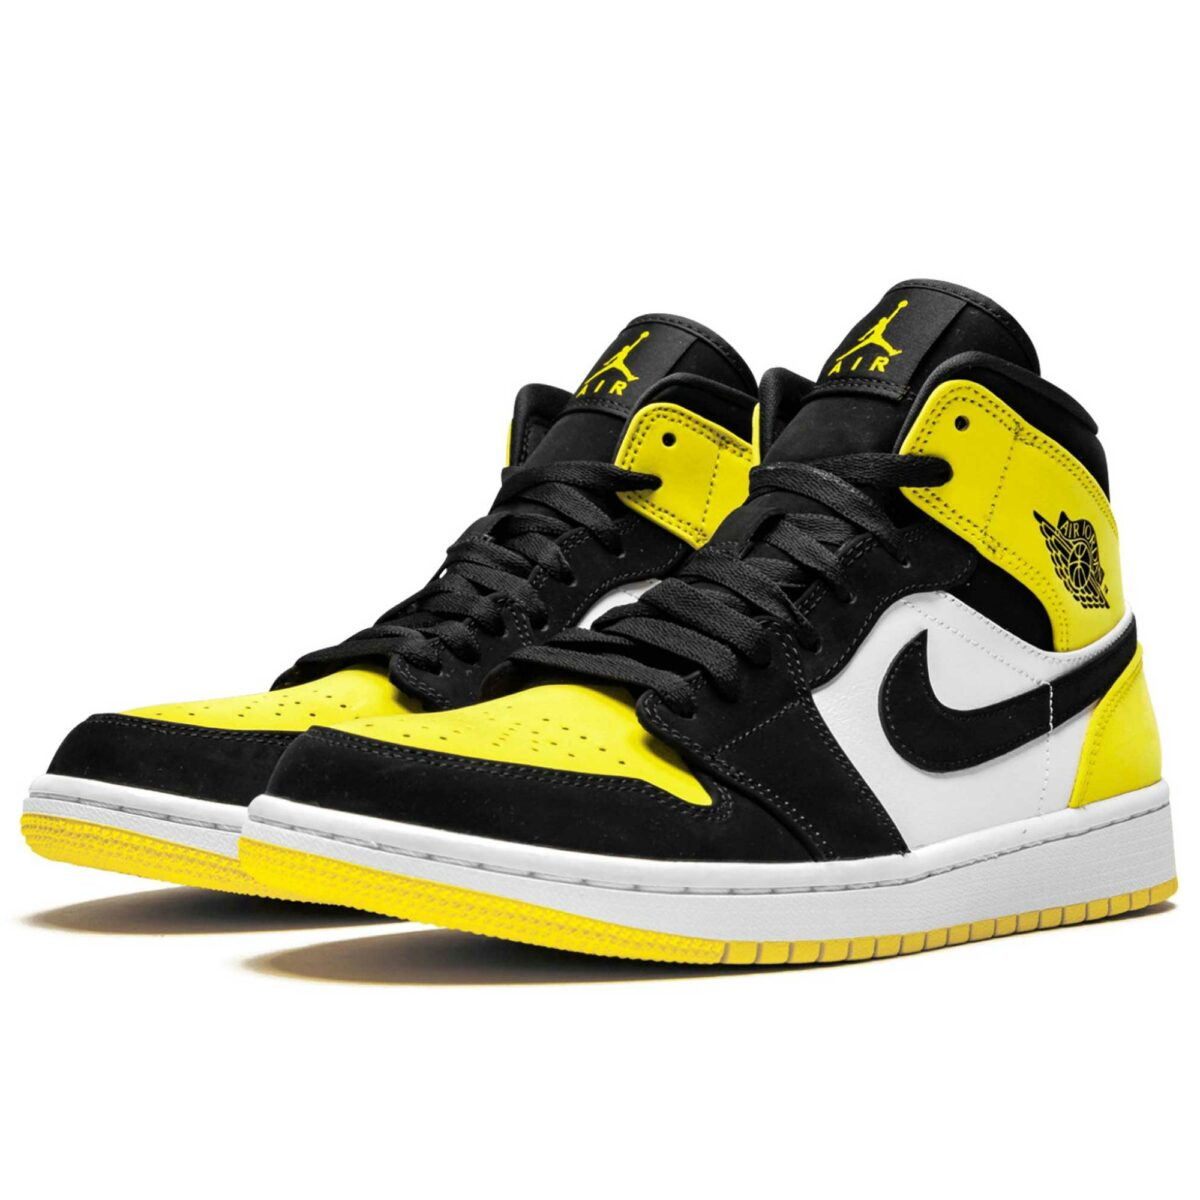 nike air Jordan 1 mid se yellow toe 852542_071 купить